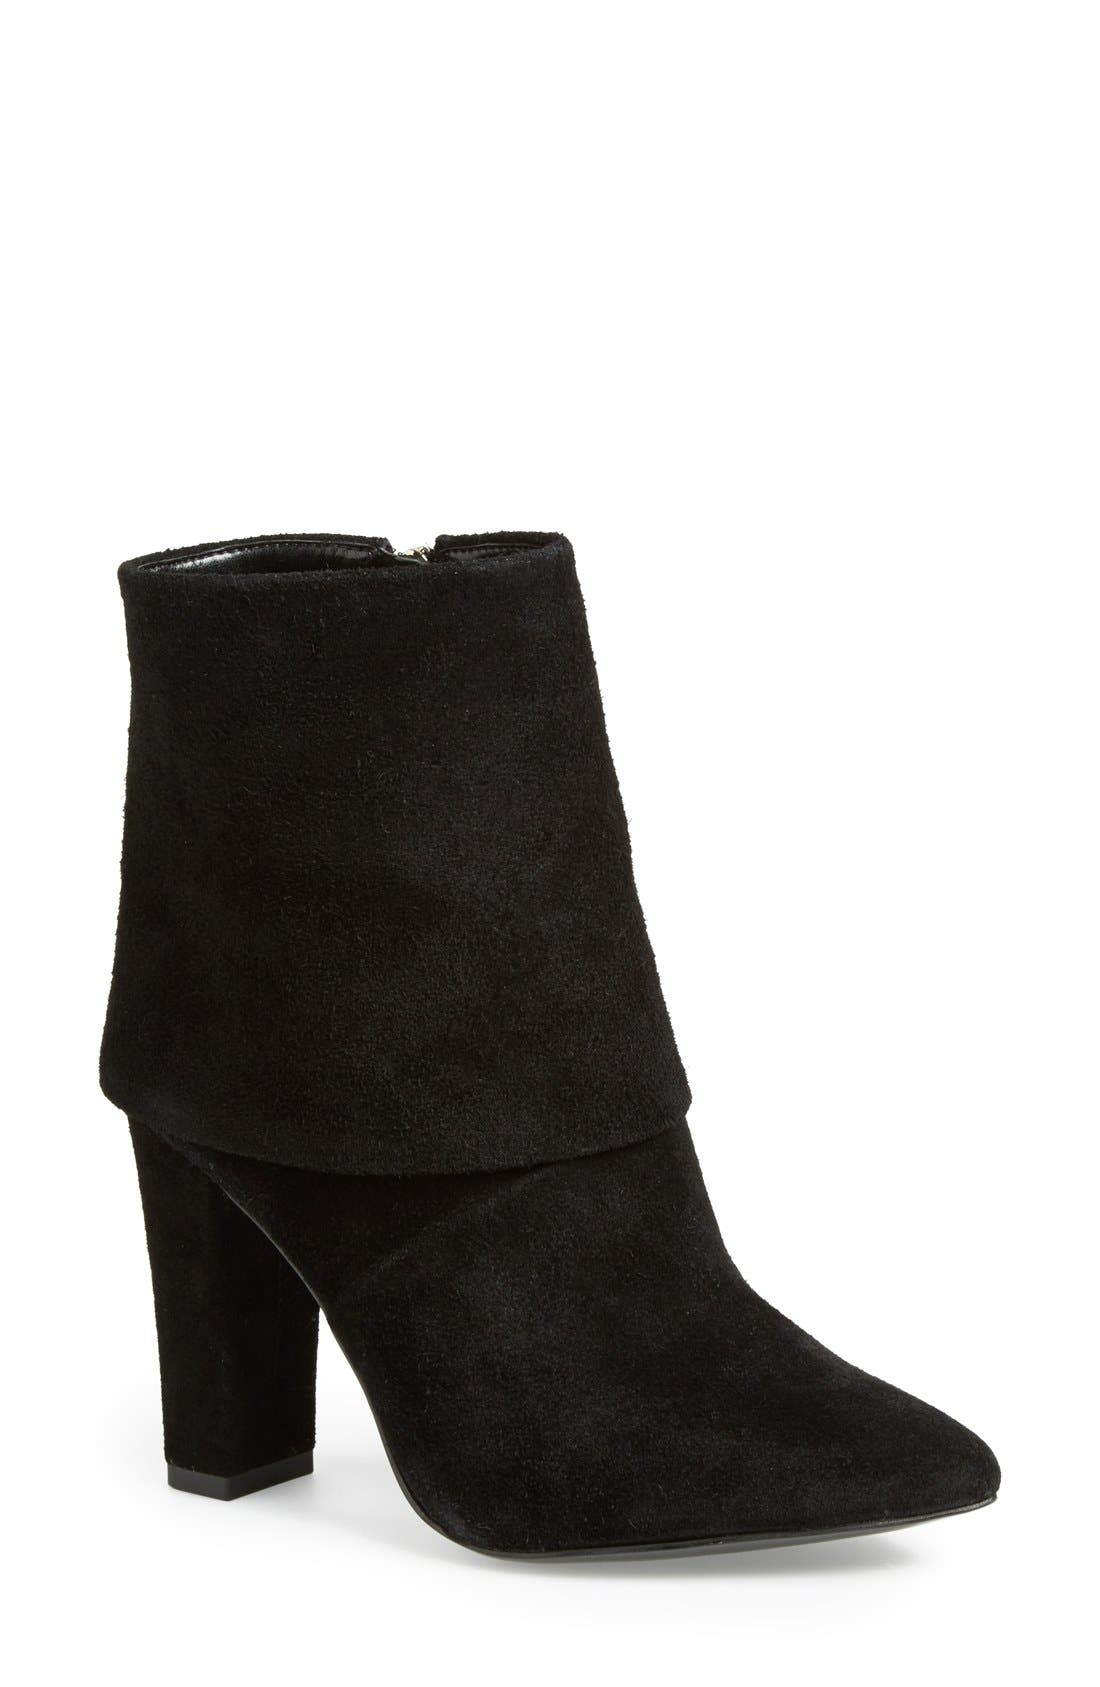 Alternate Image 1 Selected - Vince Camuto 'Amya' Suede Bootie (Women)